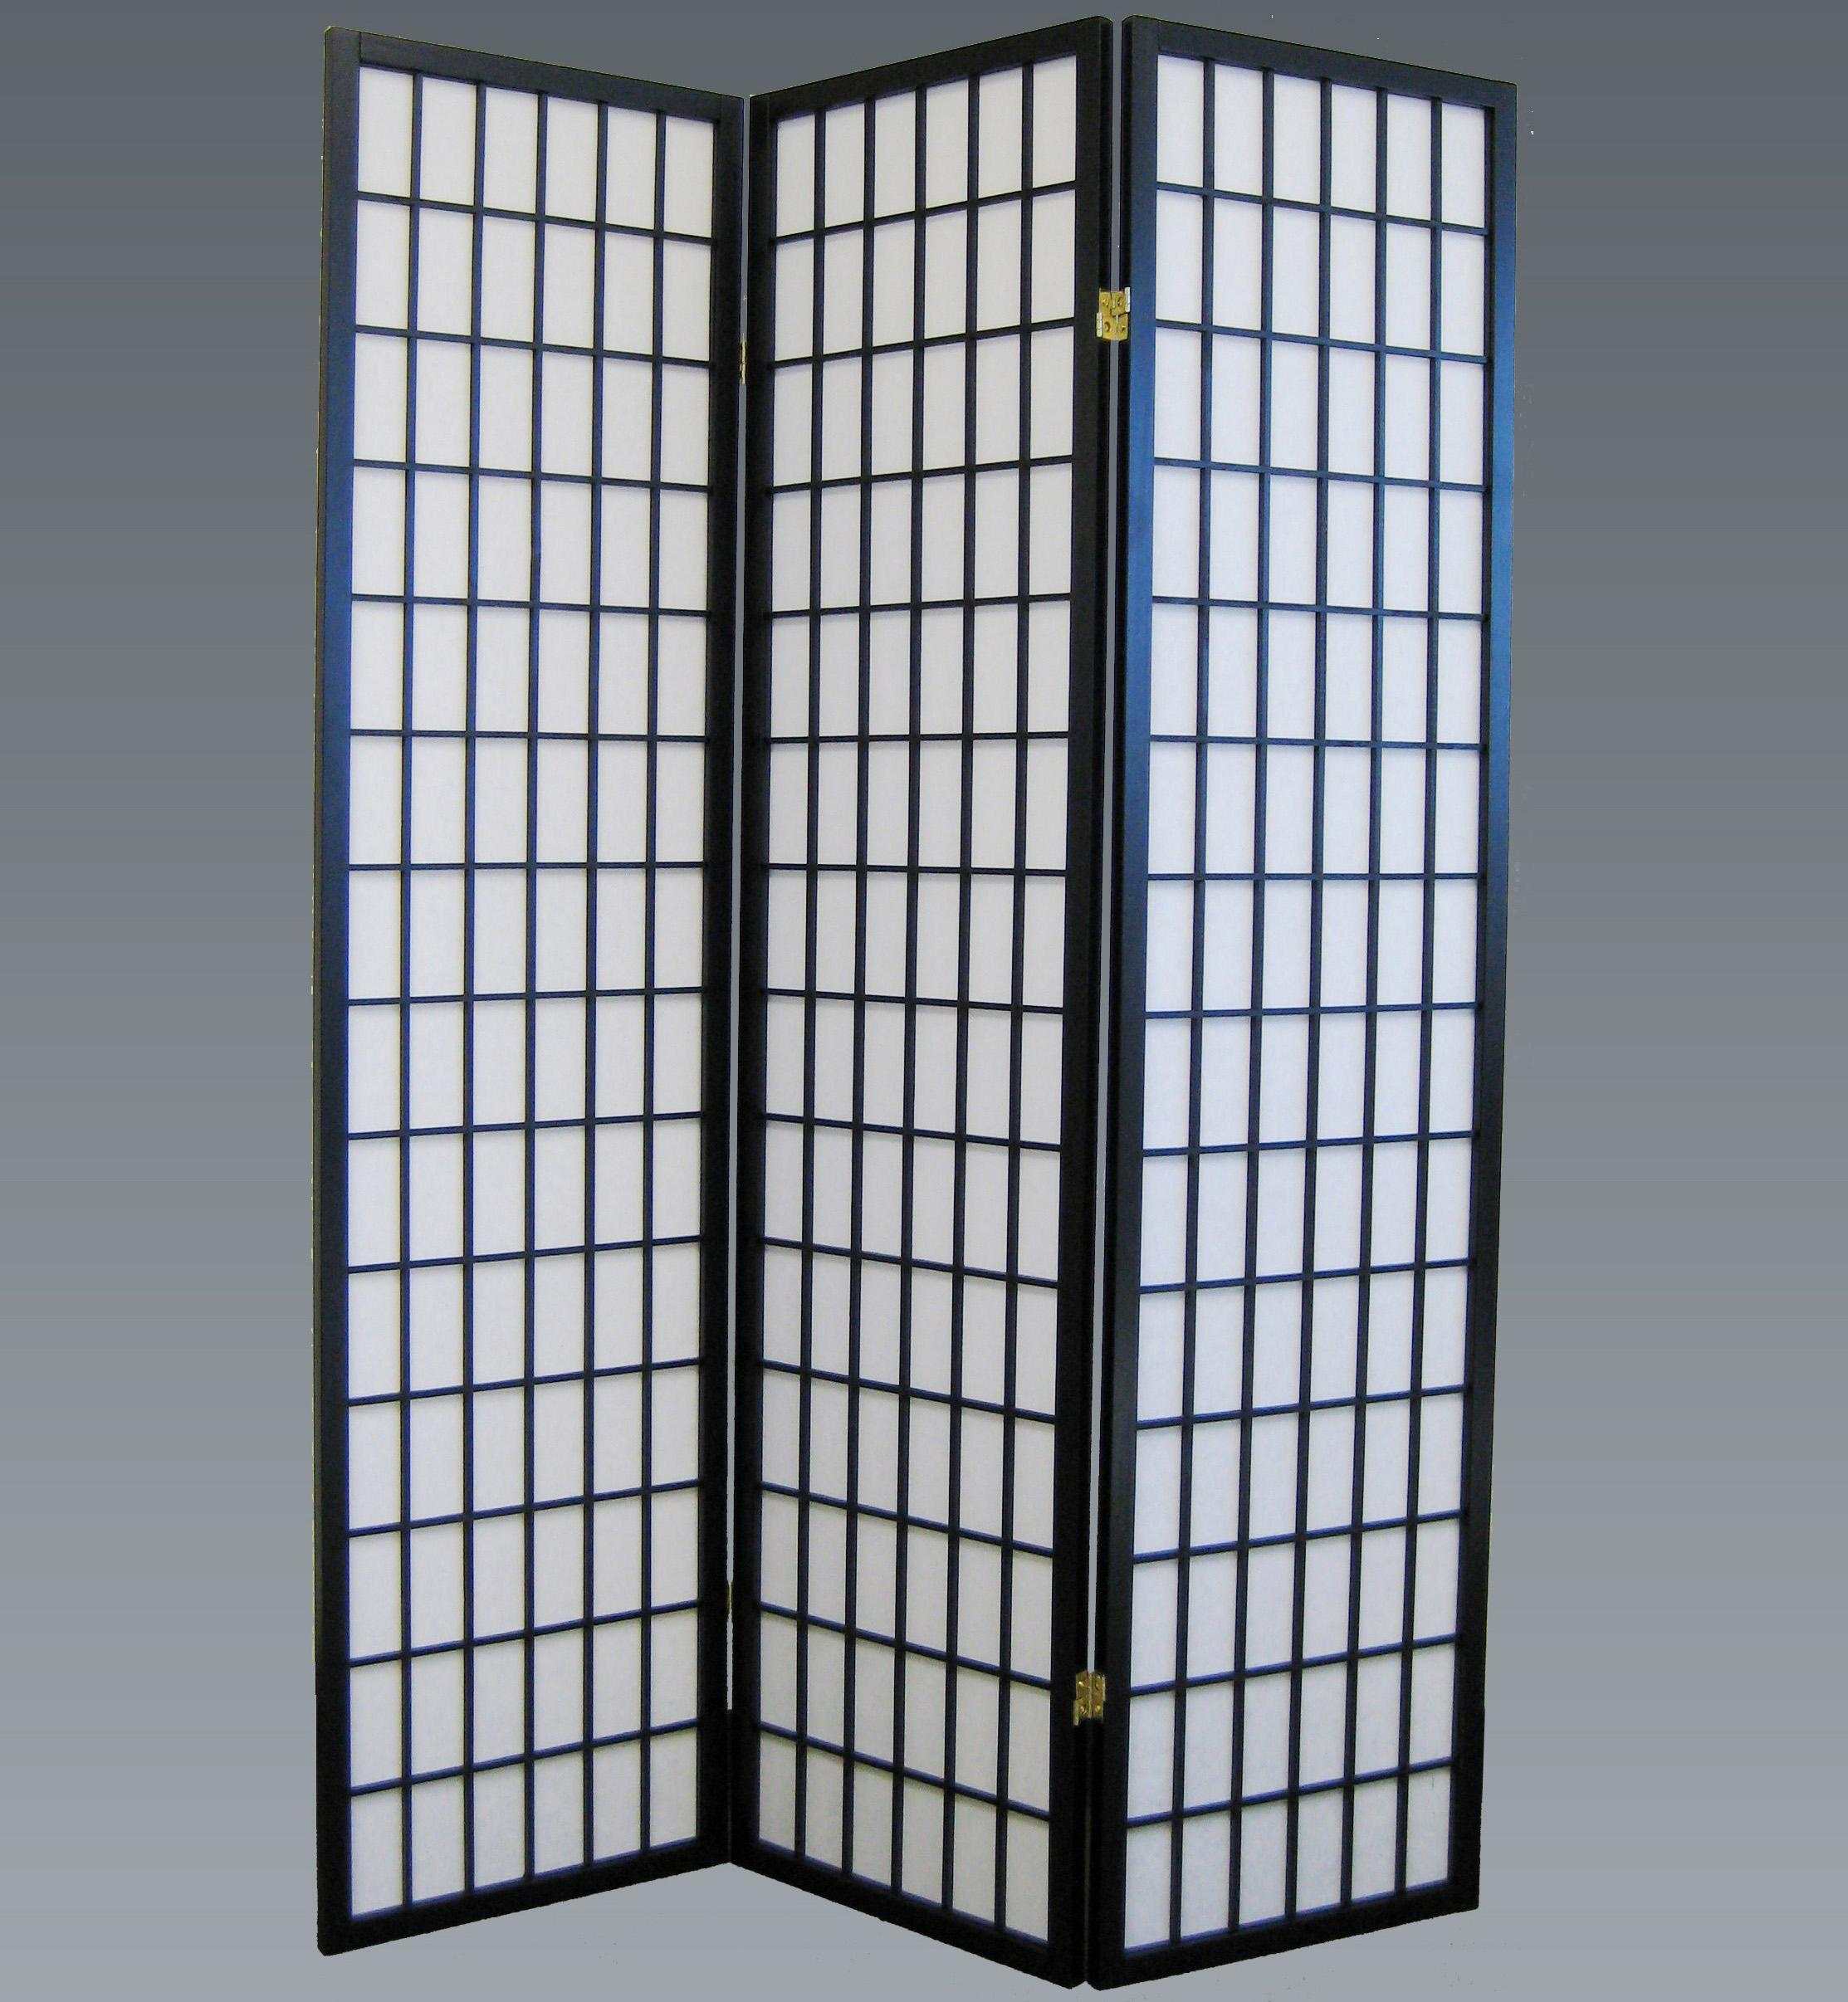 Crown Mark Miscellaneous 3 Panel Wood Screen                 - Item Number: 2003BK